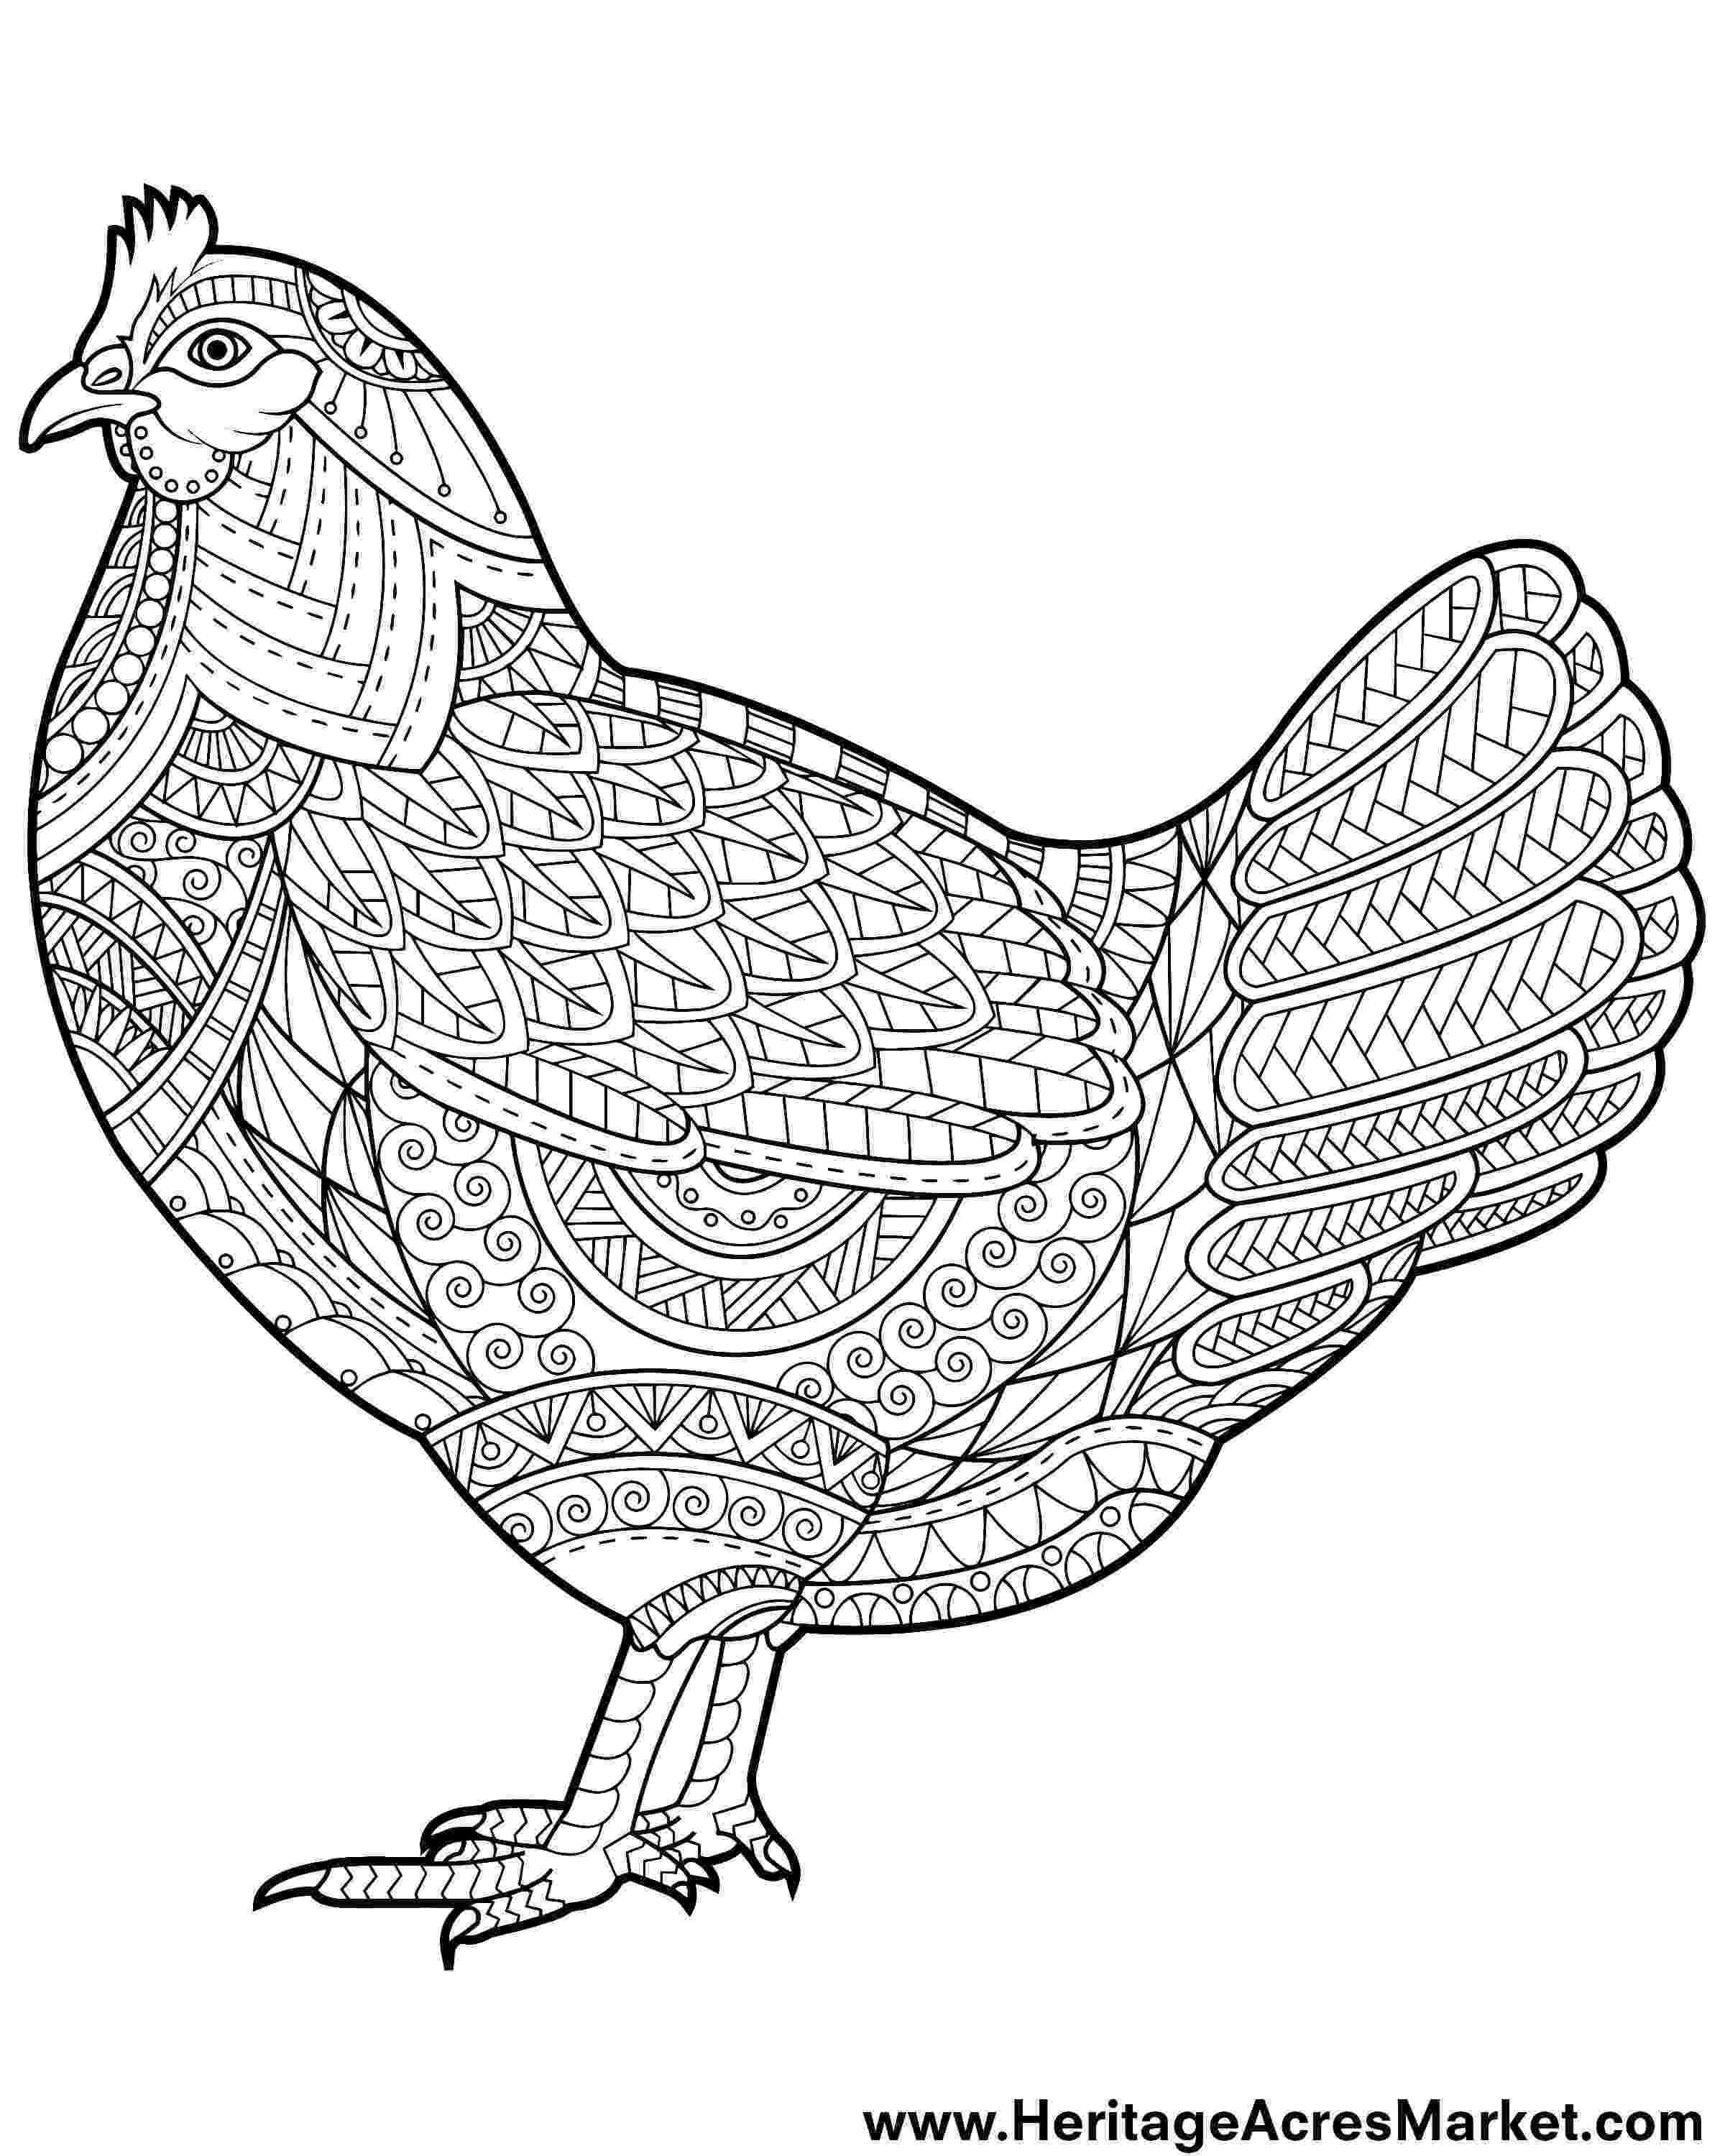 rooster coloring pages free printable rooster and hen coloring page free printable coloring pages free rooster pages coloring printable